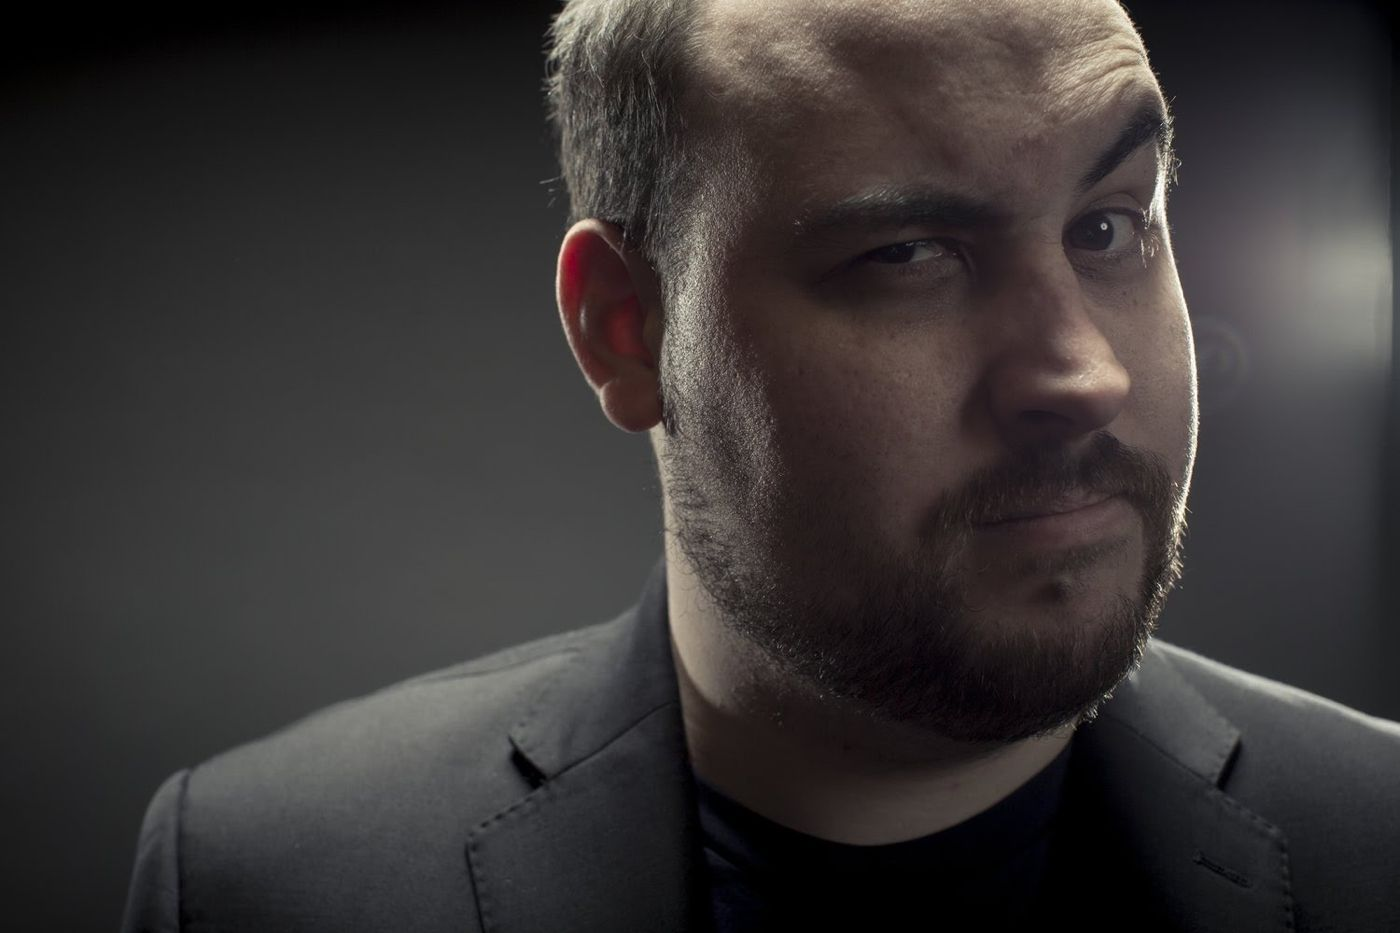 TotalBiscuit passes away at 33